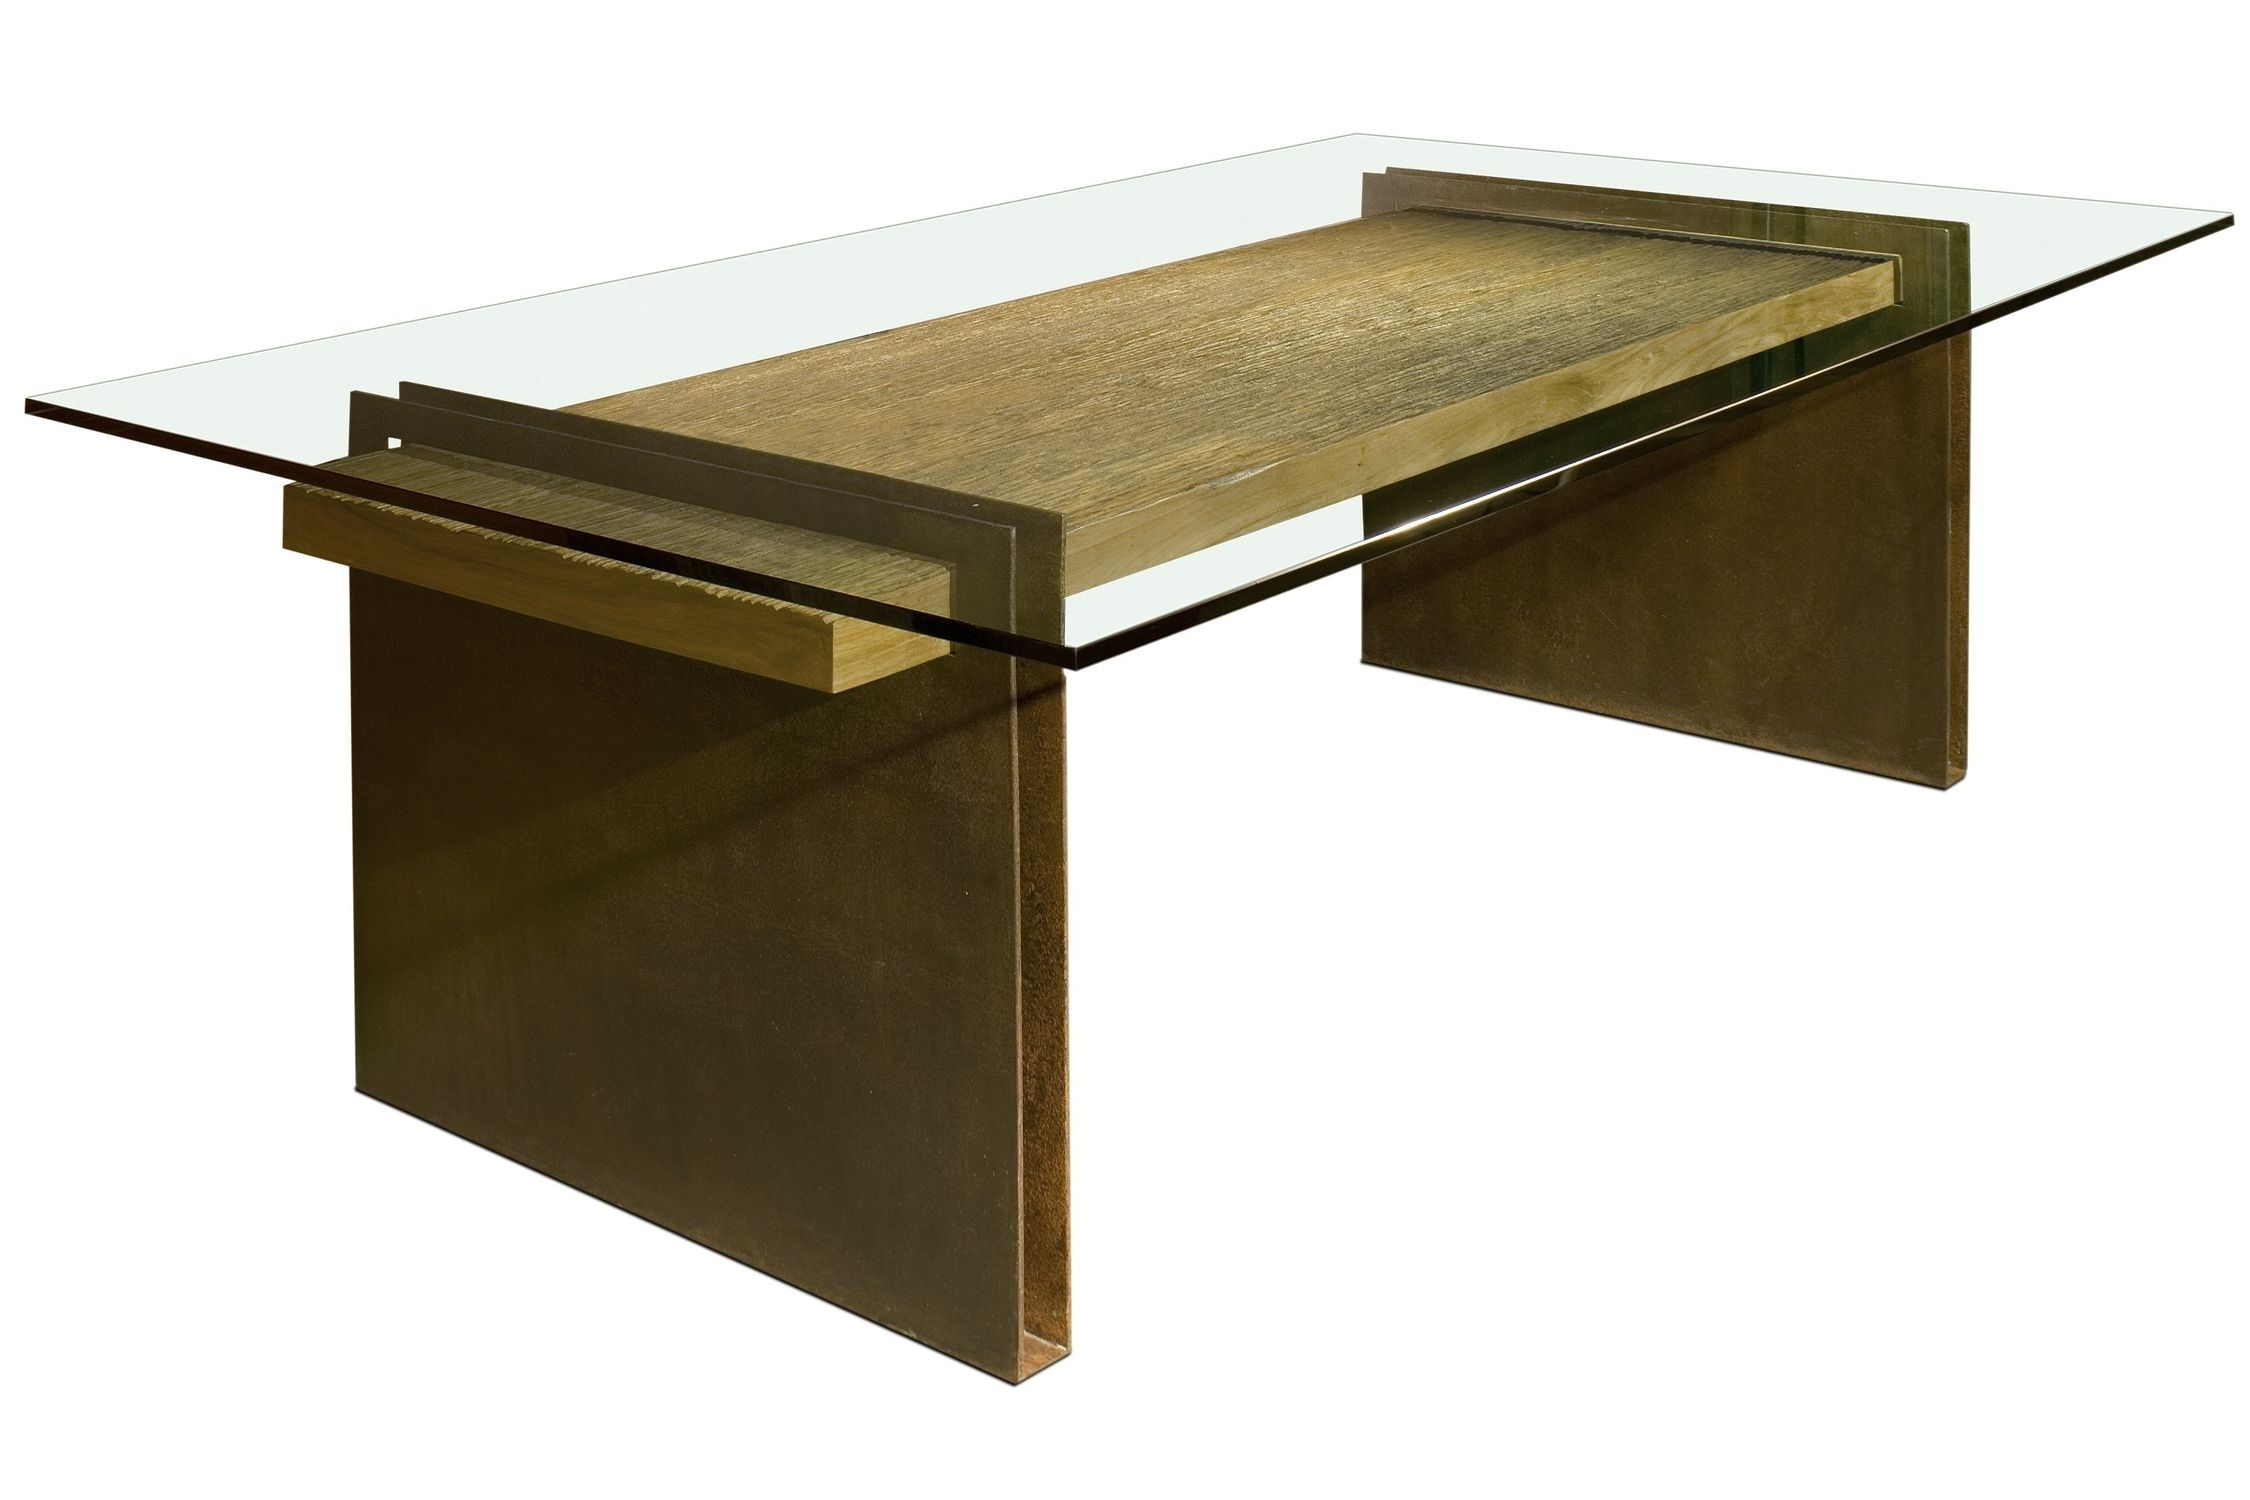 Contemporary Table Wooden Rectangular In Reclaimed Material Chapa Metal Base